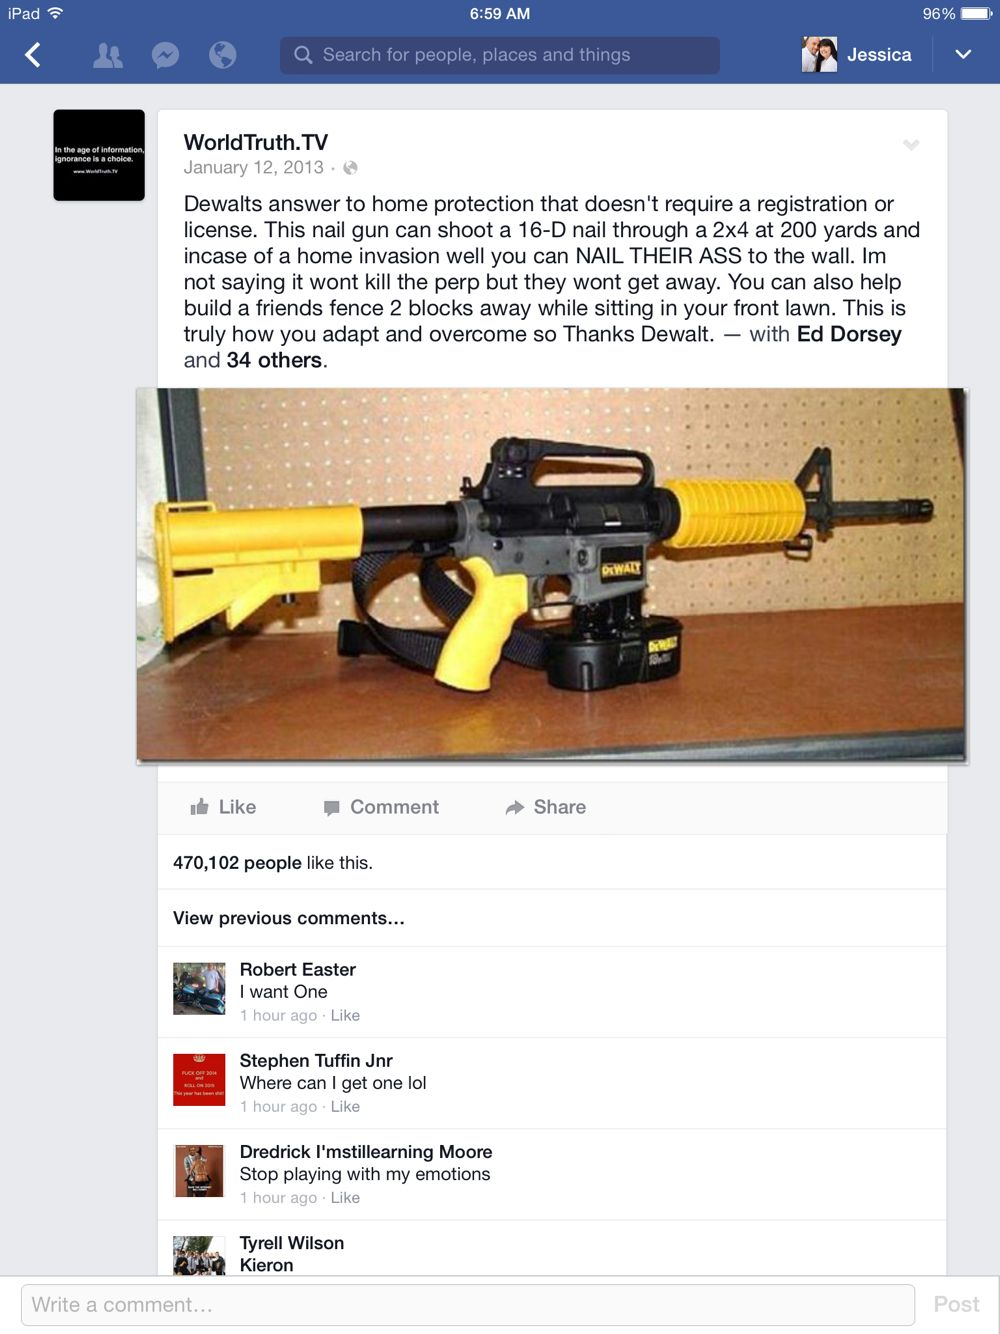 Can\'t own or afford an ar15? DeWalt\'s solution: a self defense nail ...